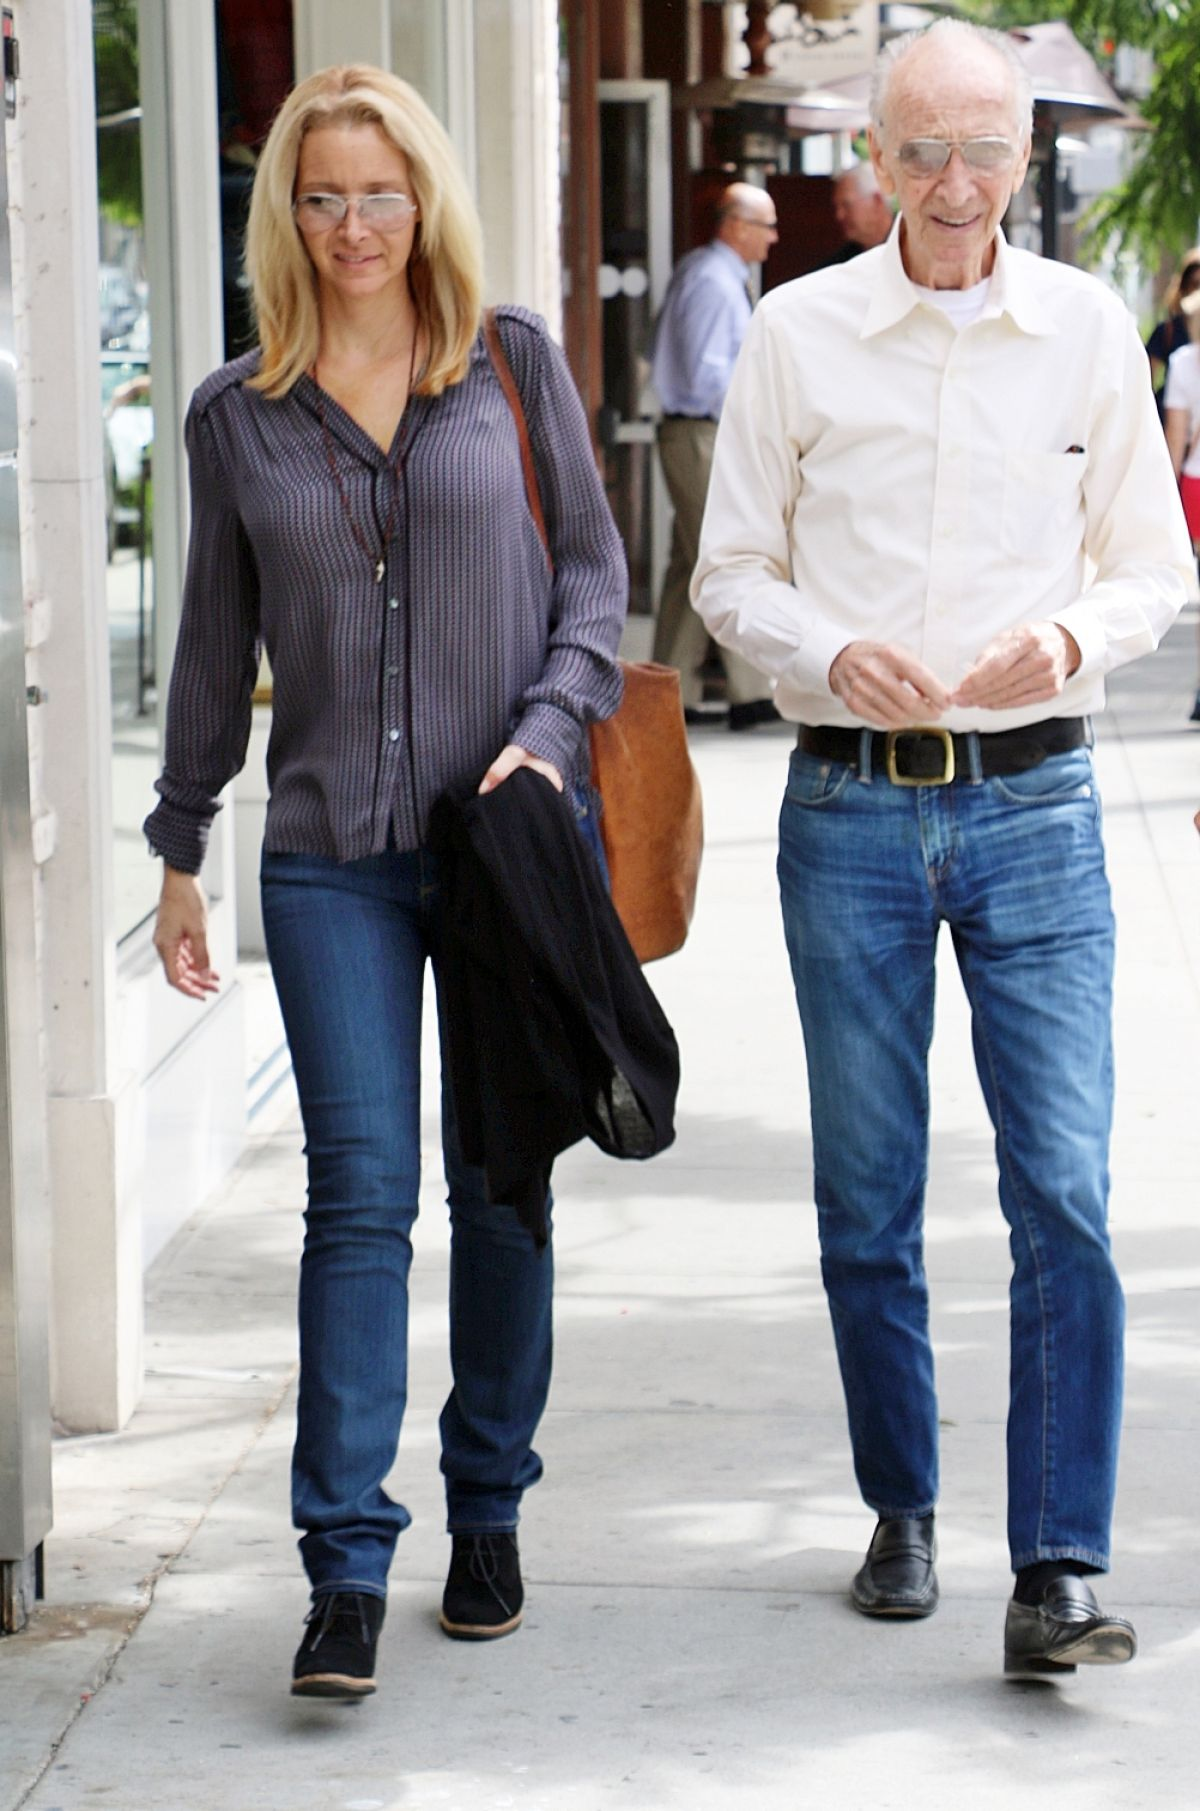 LISA KUDROW Out With Her Dad in Beverly Hills 10/28/2015